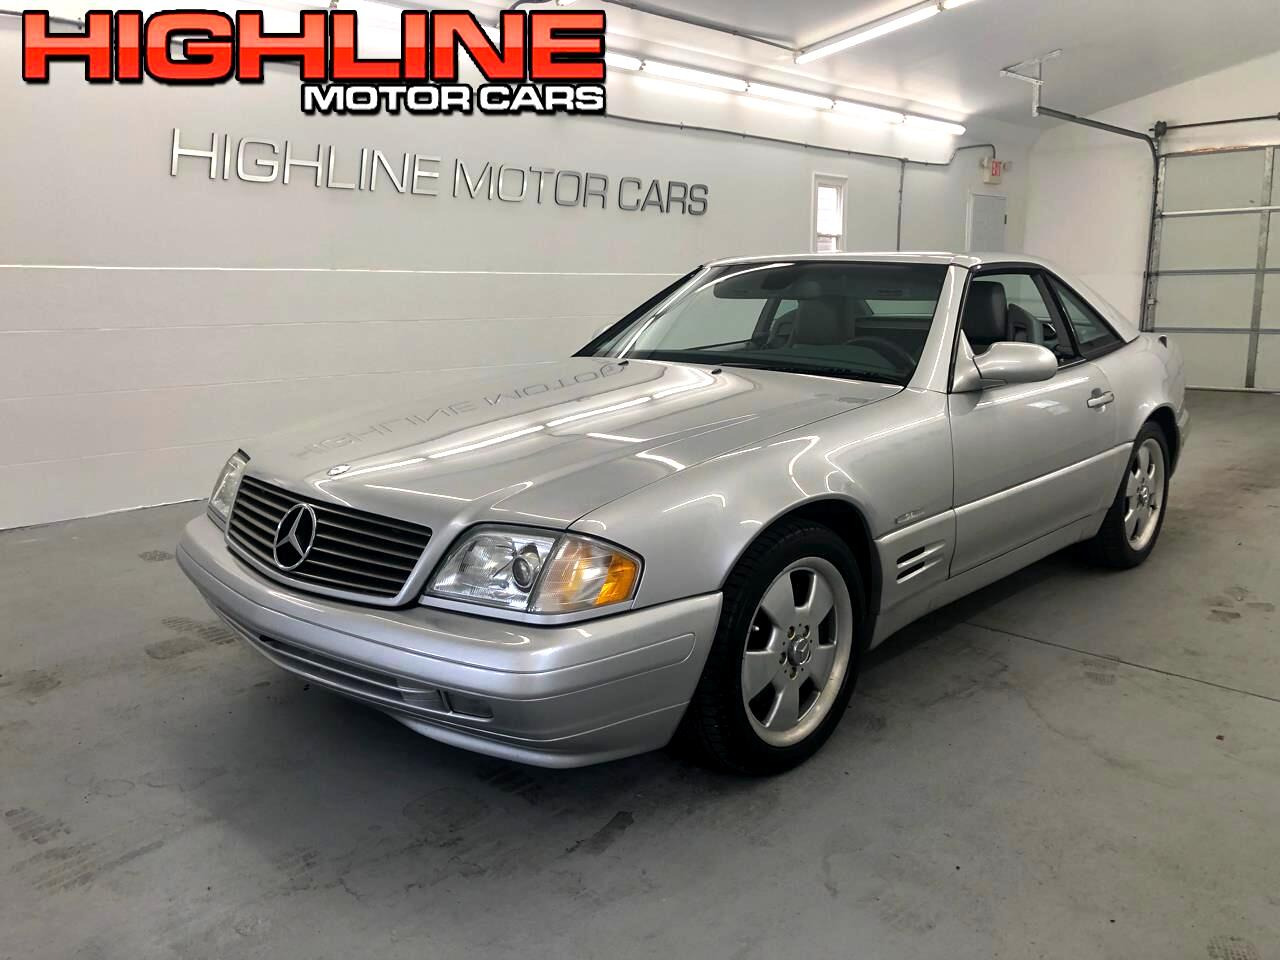 2000 Mercedes-Benz SL-Class 2dr Roadster 5.0L Silver Arrow